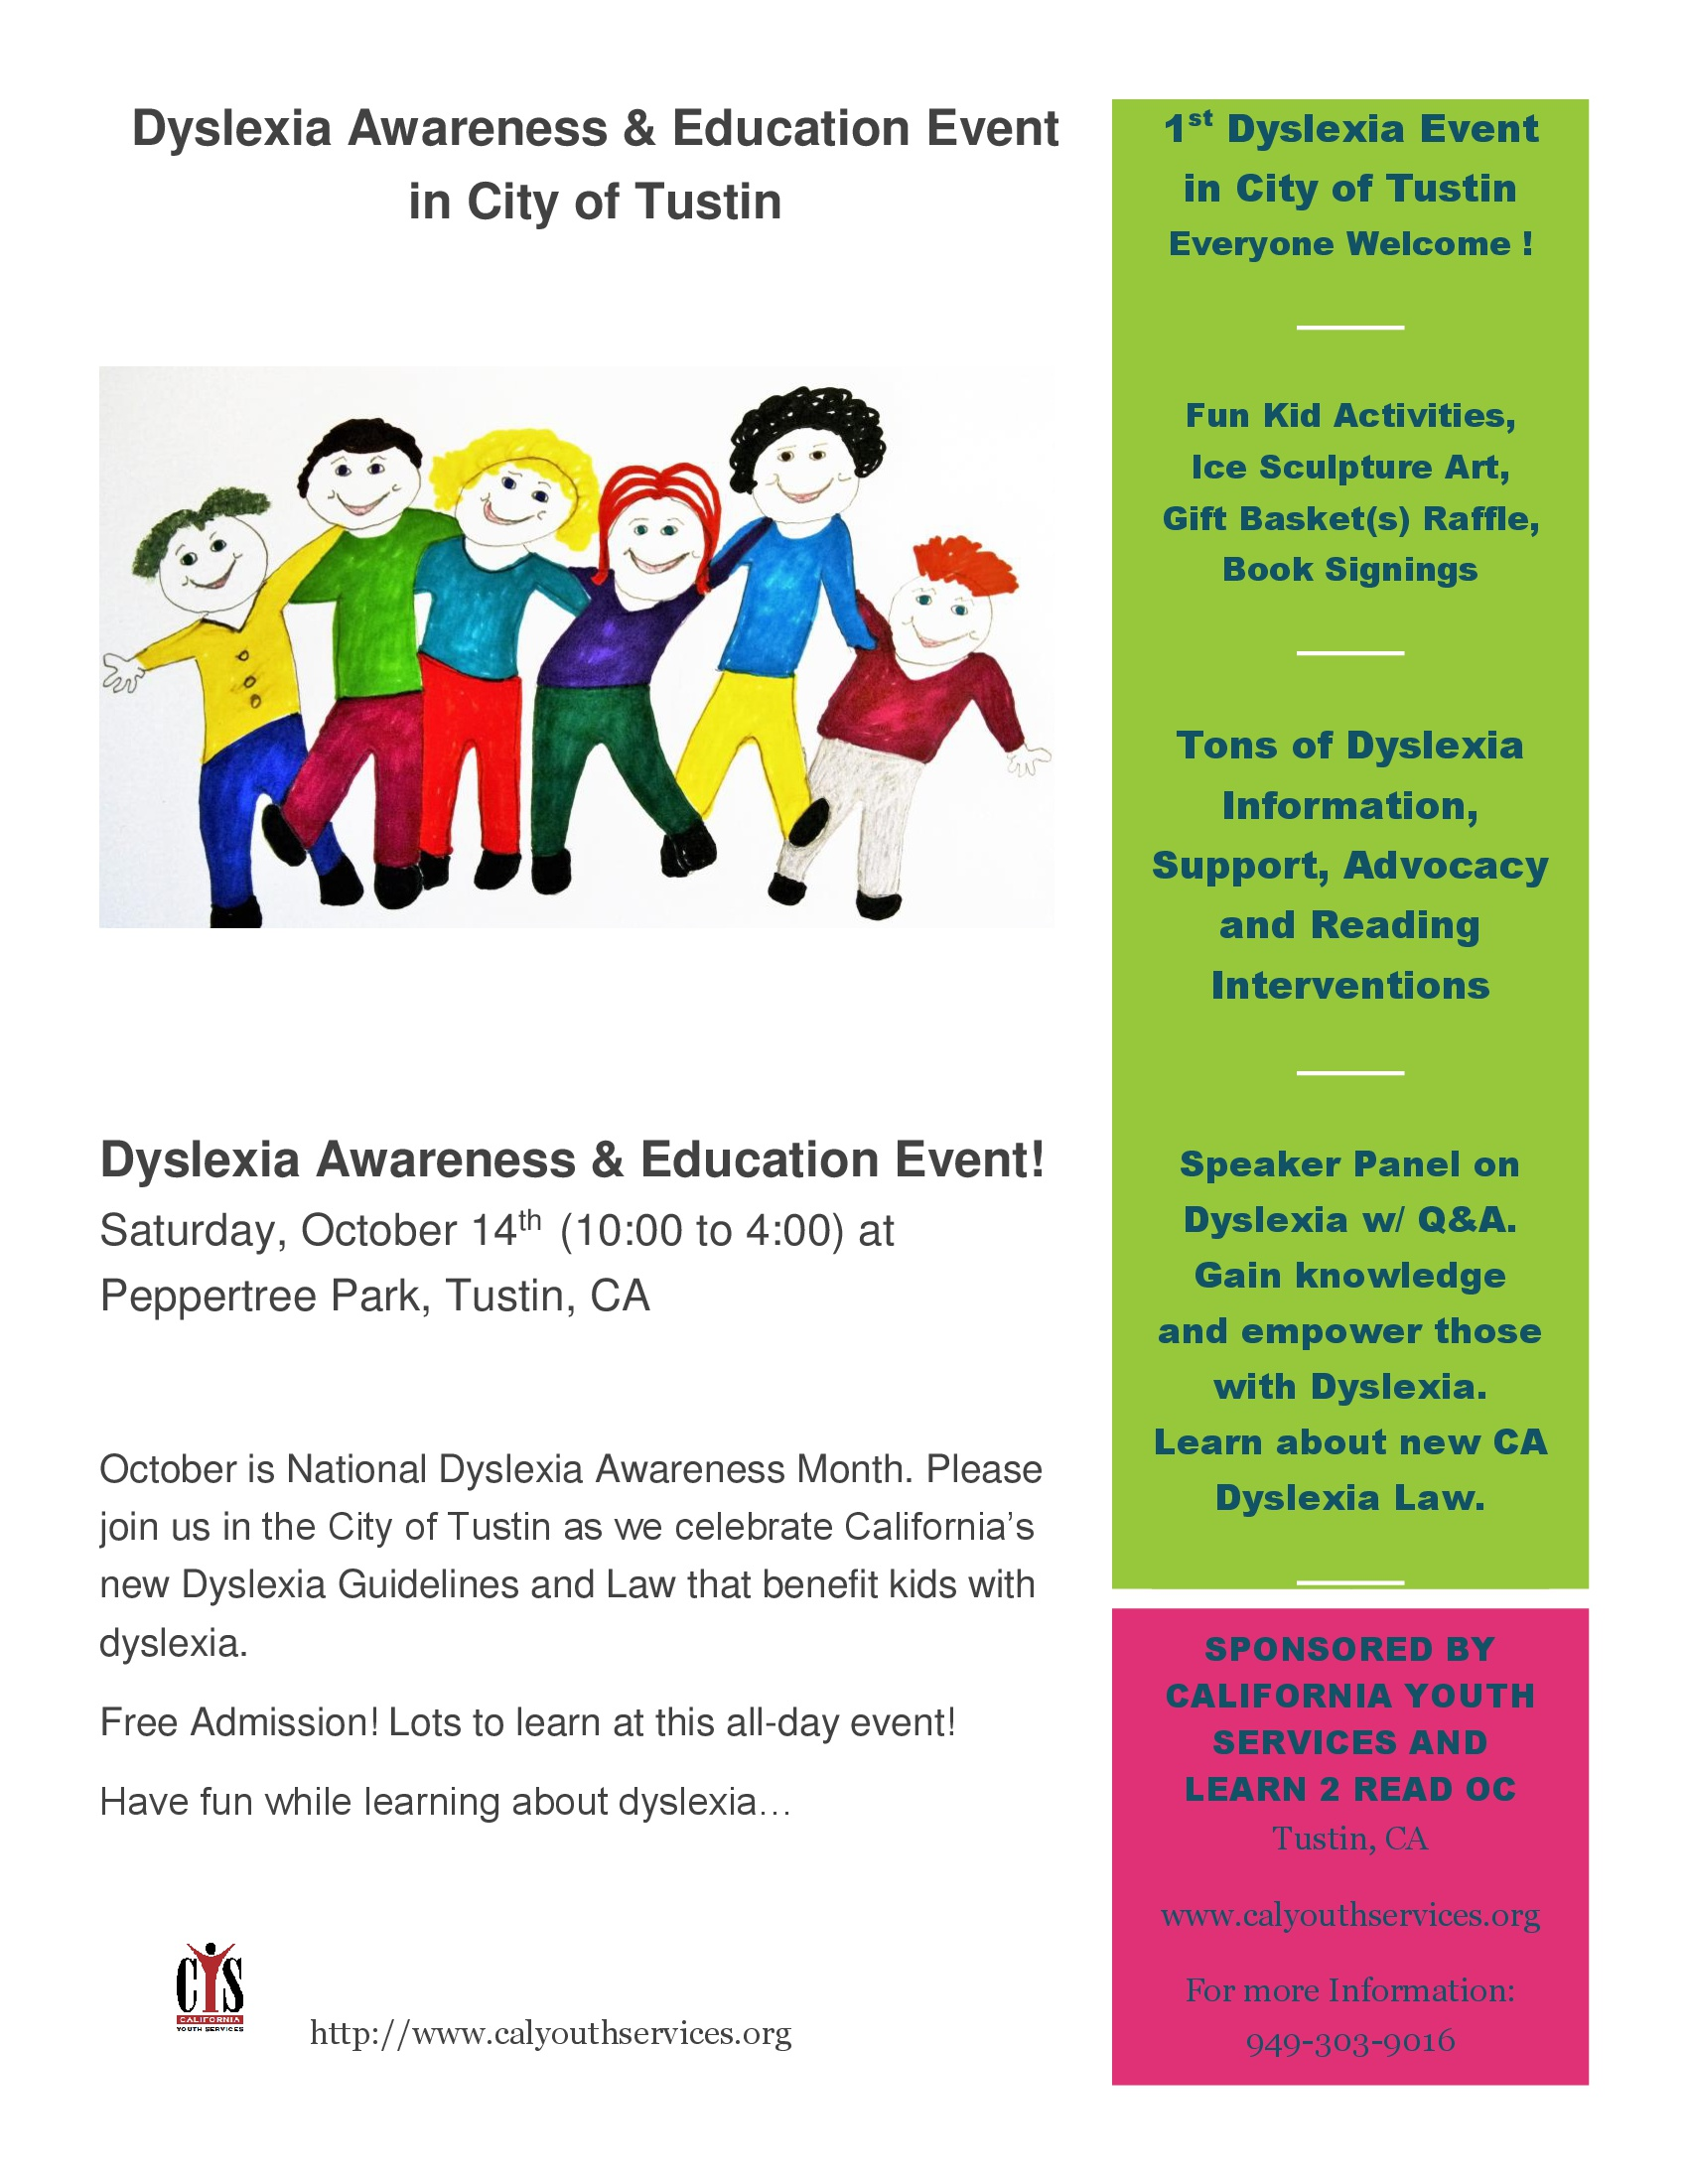 Dyslexia Awareness Campaign Upcoming >> Dyslexia Awareness Education Event In City Of Tustin